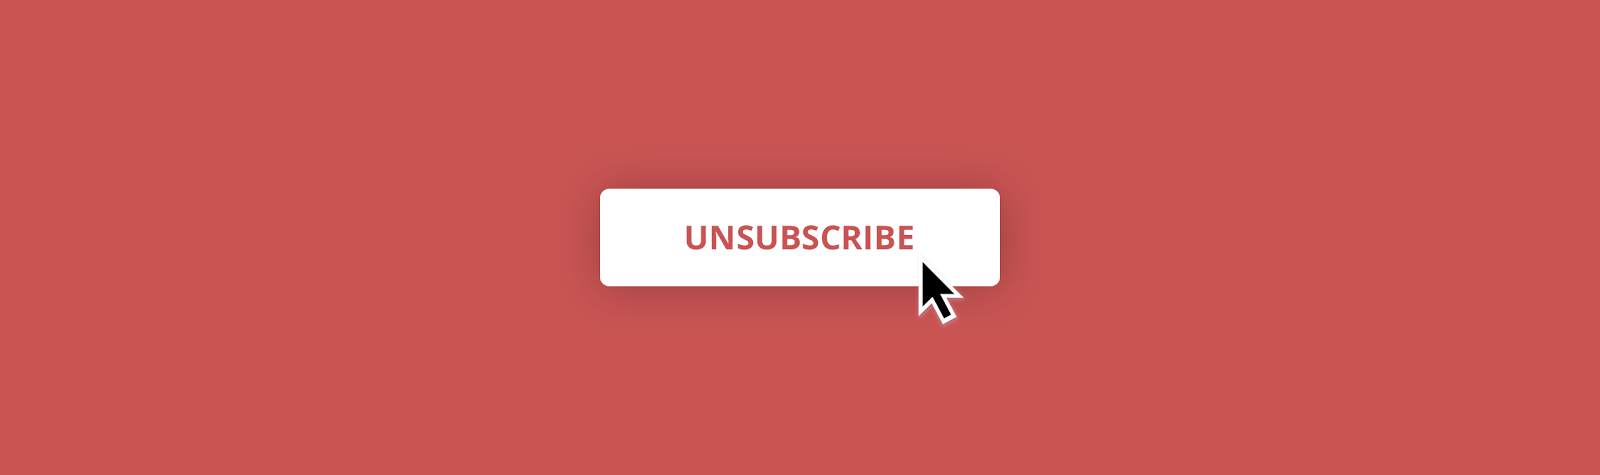 Unsubscribe